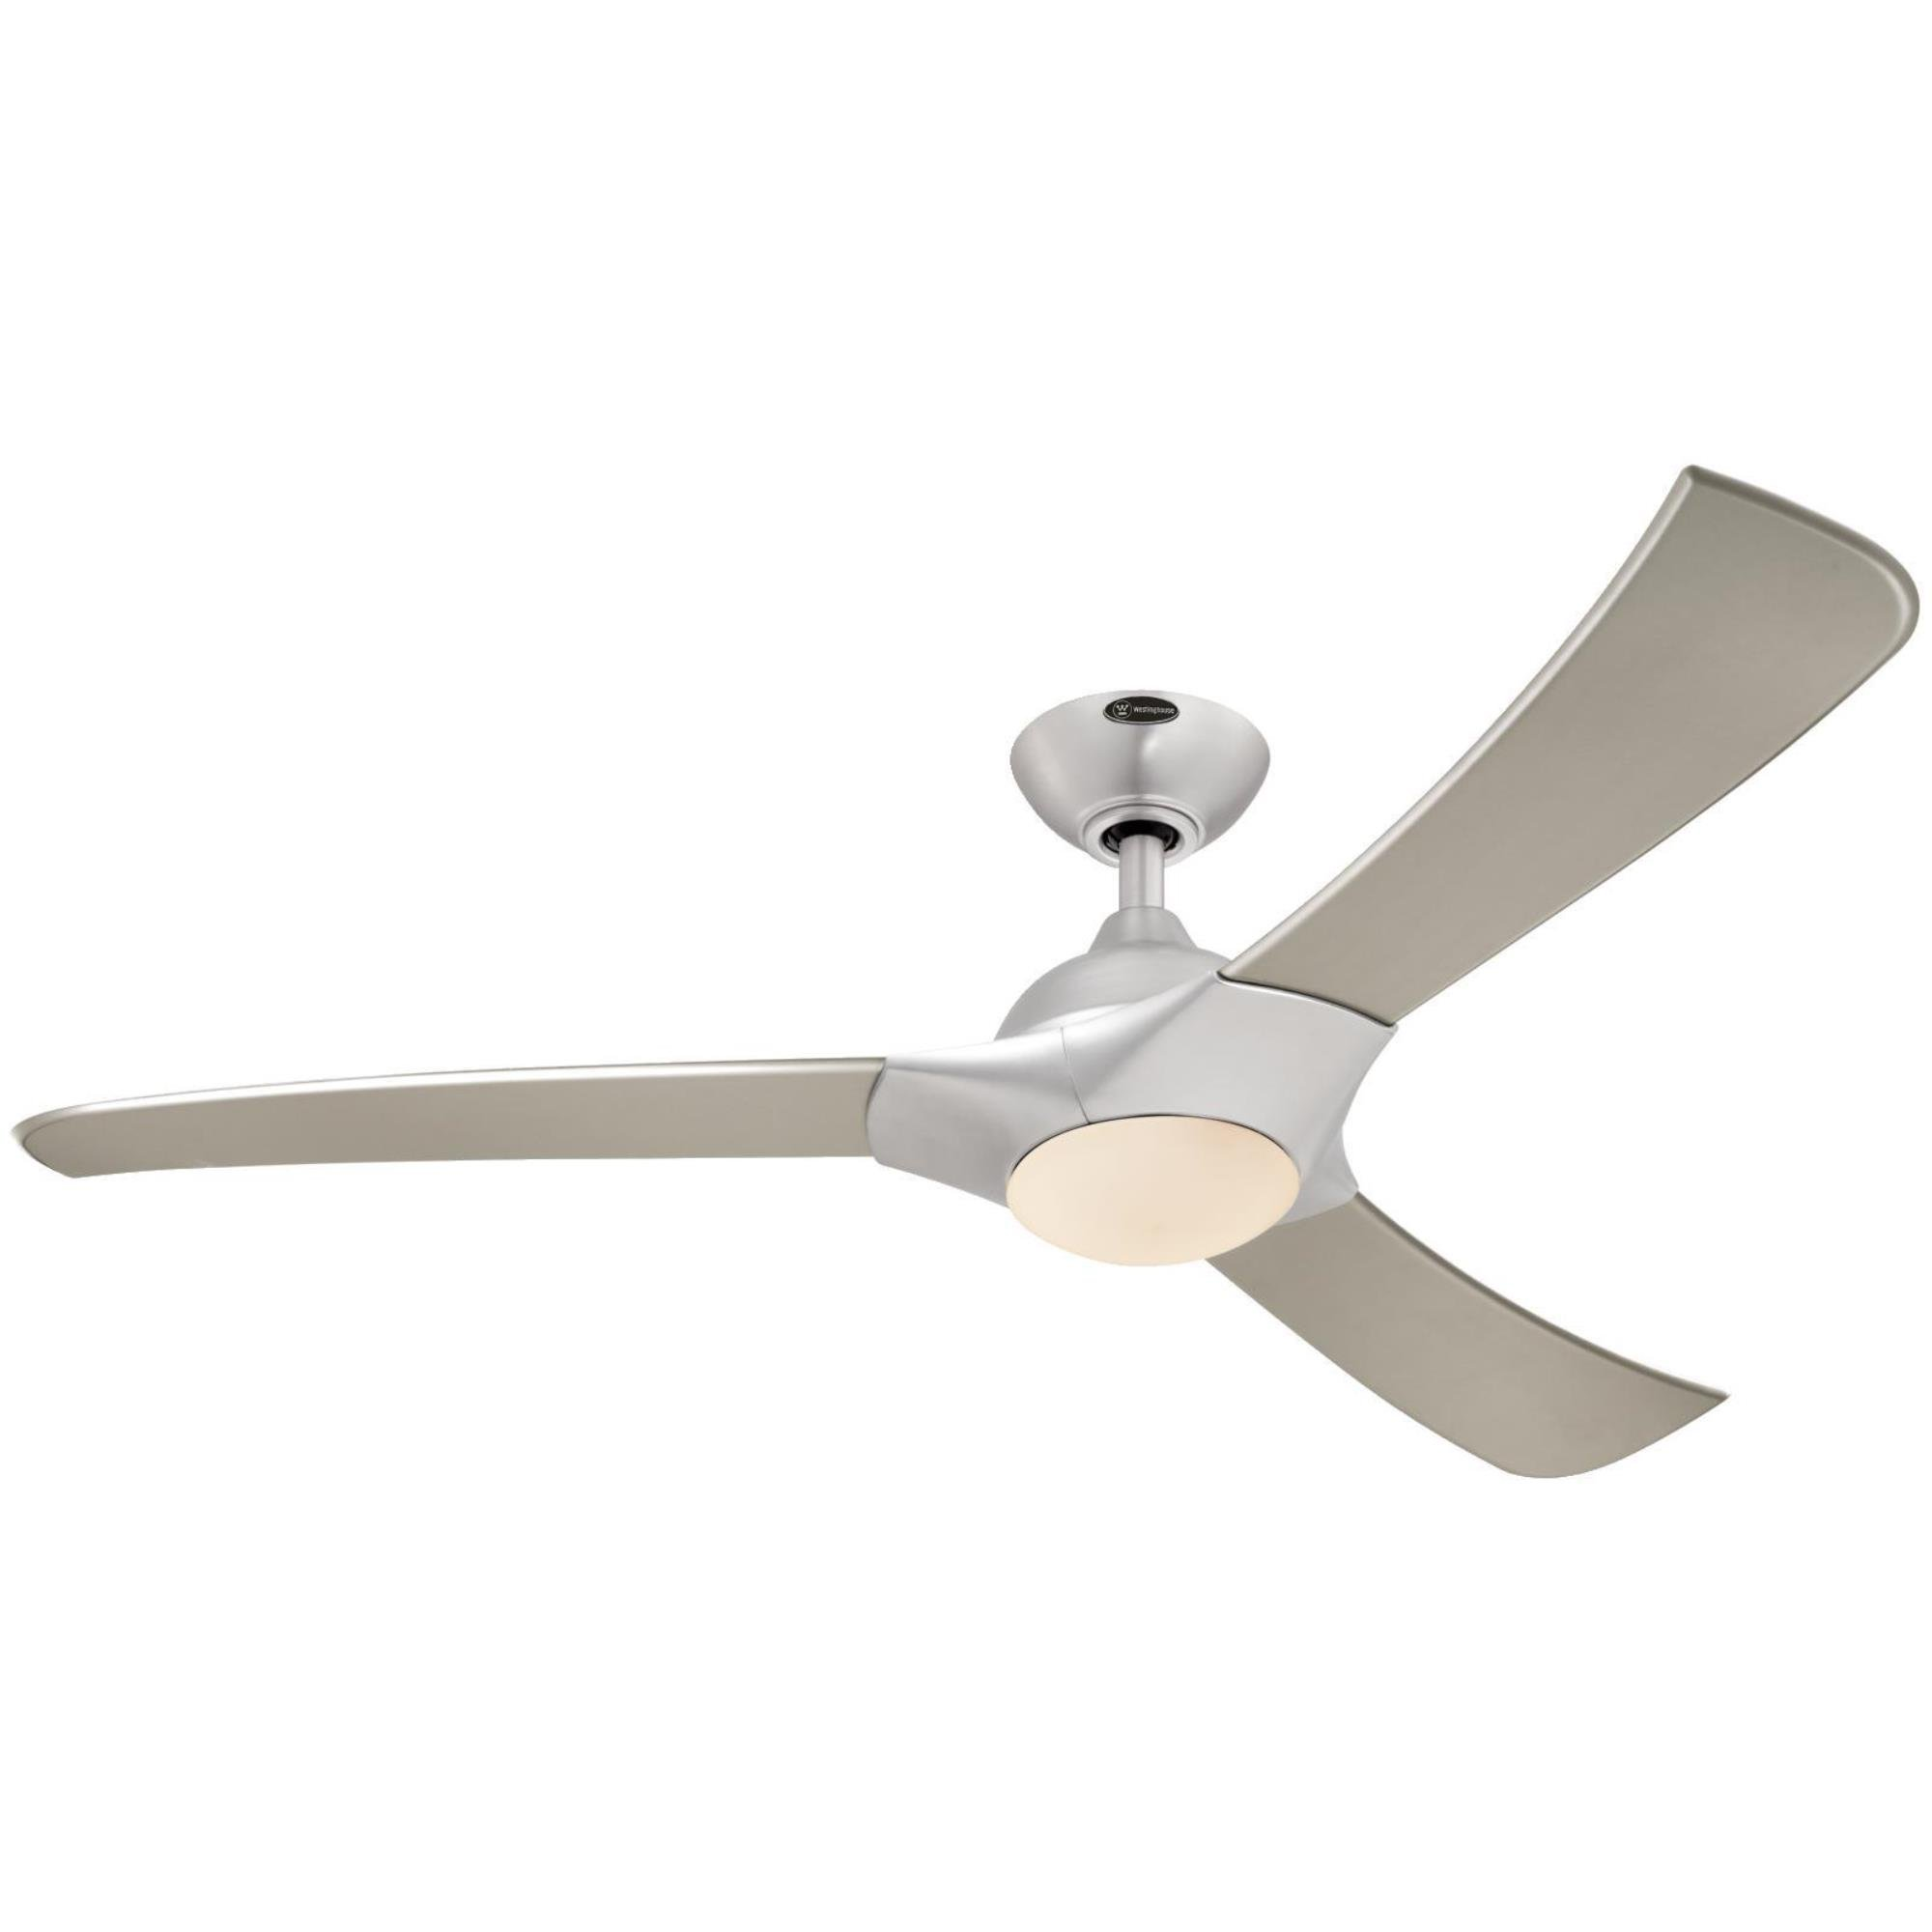 7800200 Techno 52-Inch Brushed Aluminum Indoor LED Ceiling Fan, Light Kit with Opal Frosted Glass